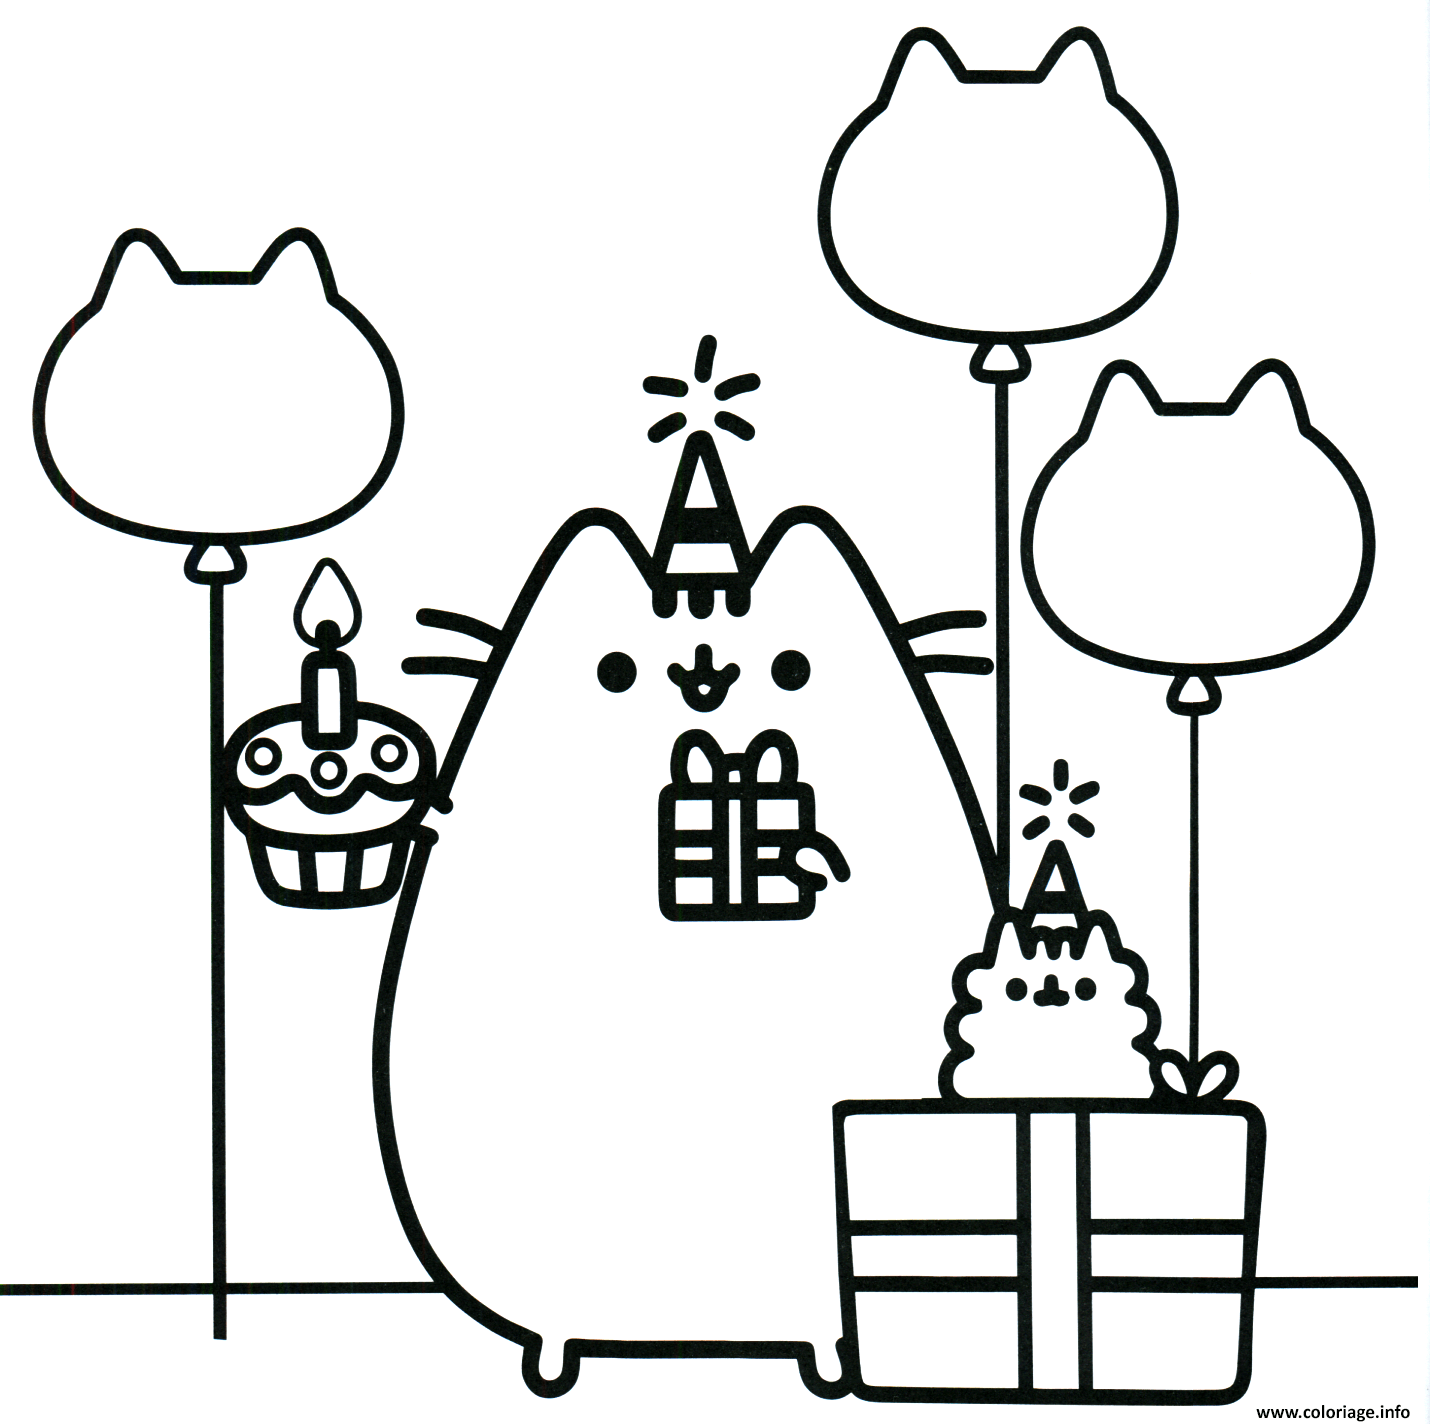 Dessin pusheen the cat party Coloriage Gratuit à Imprimer